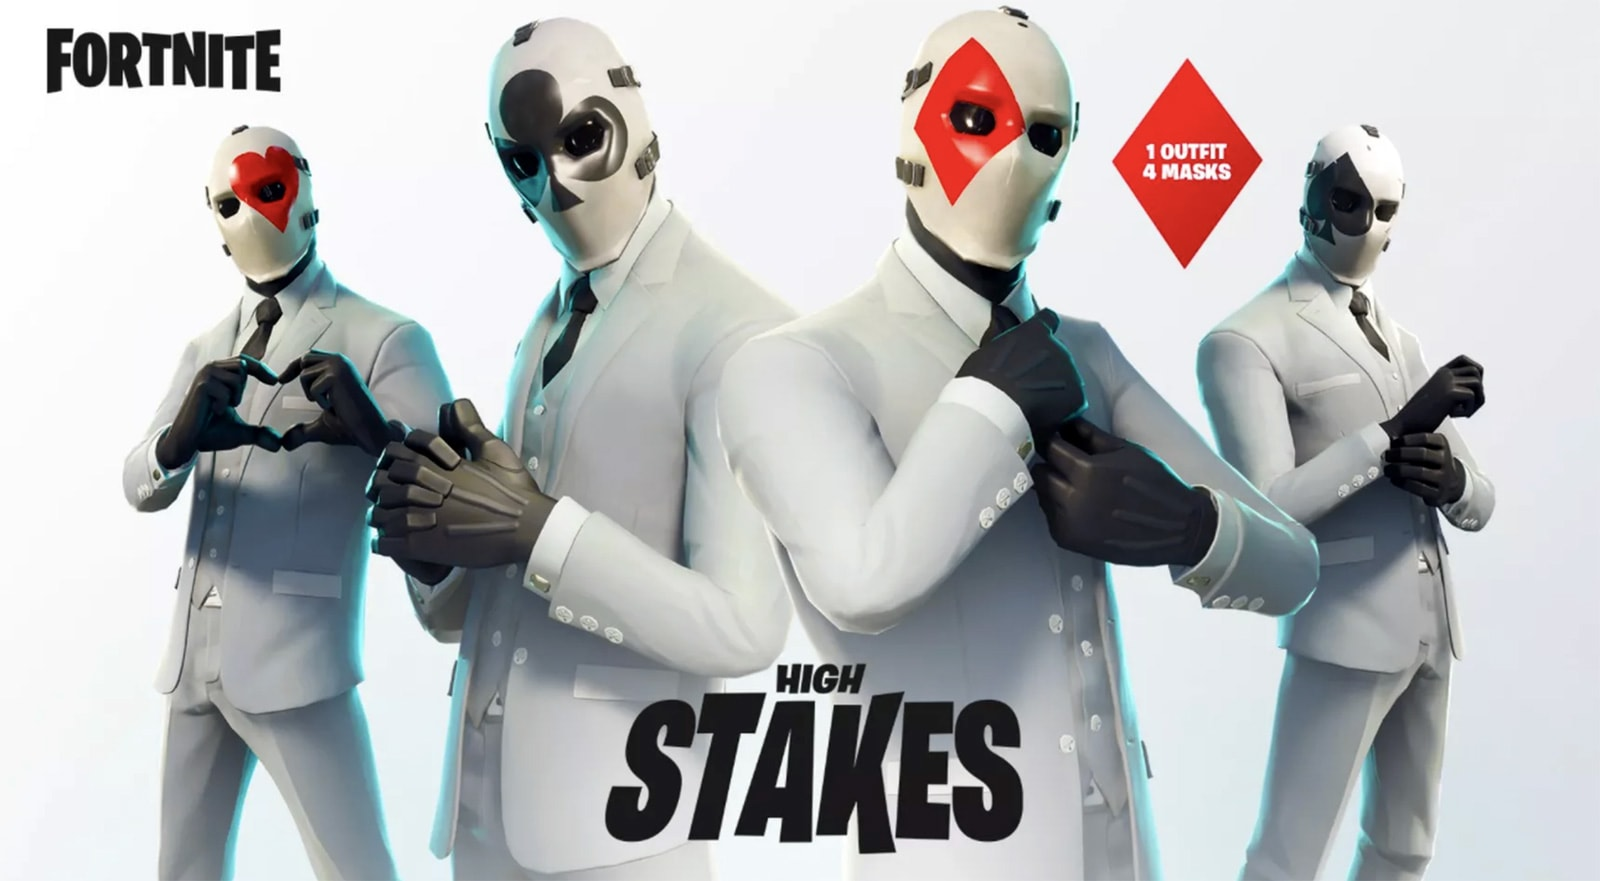 The Latest Limited Time Fortnite Game Mode Is A Daring Jewel Heist